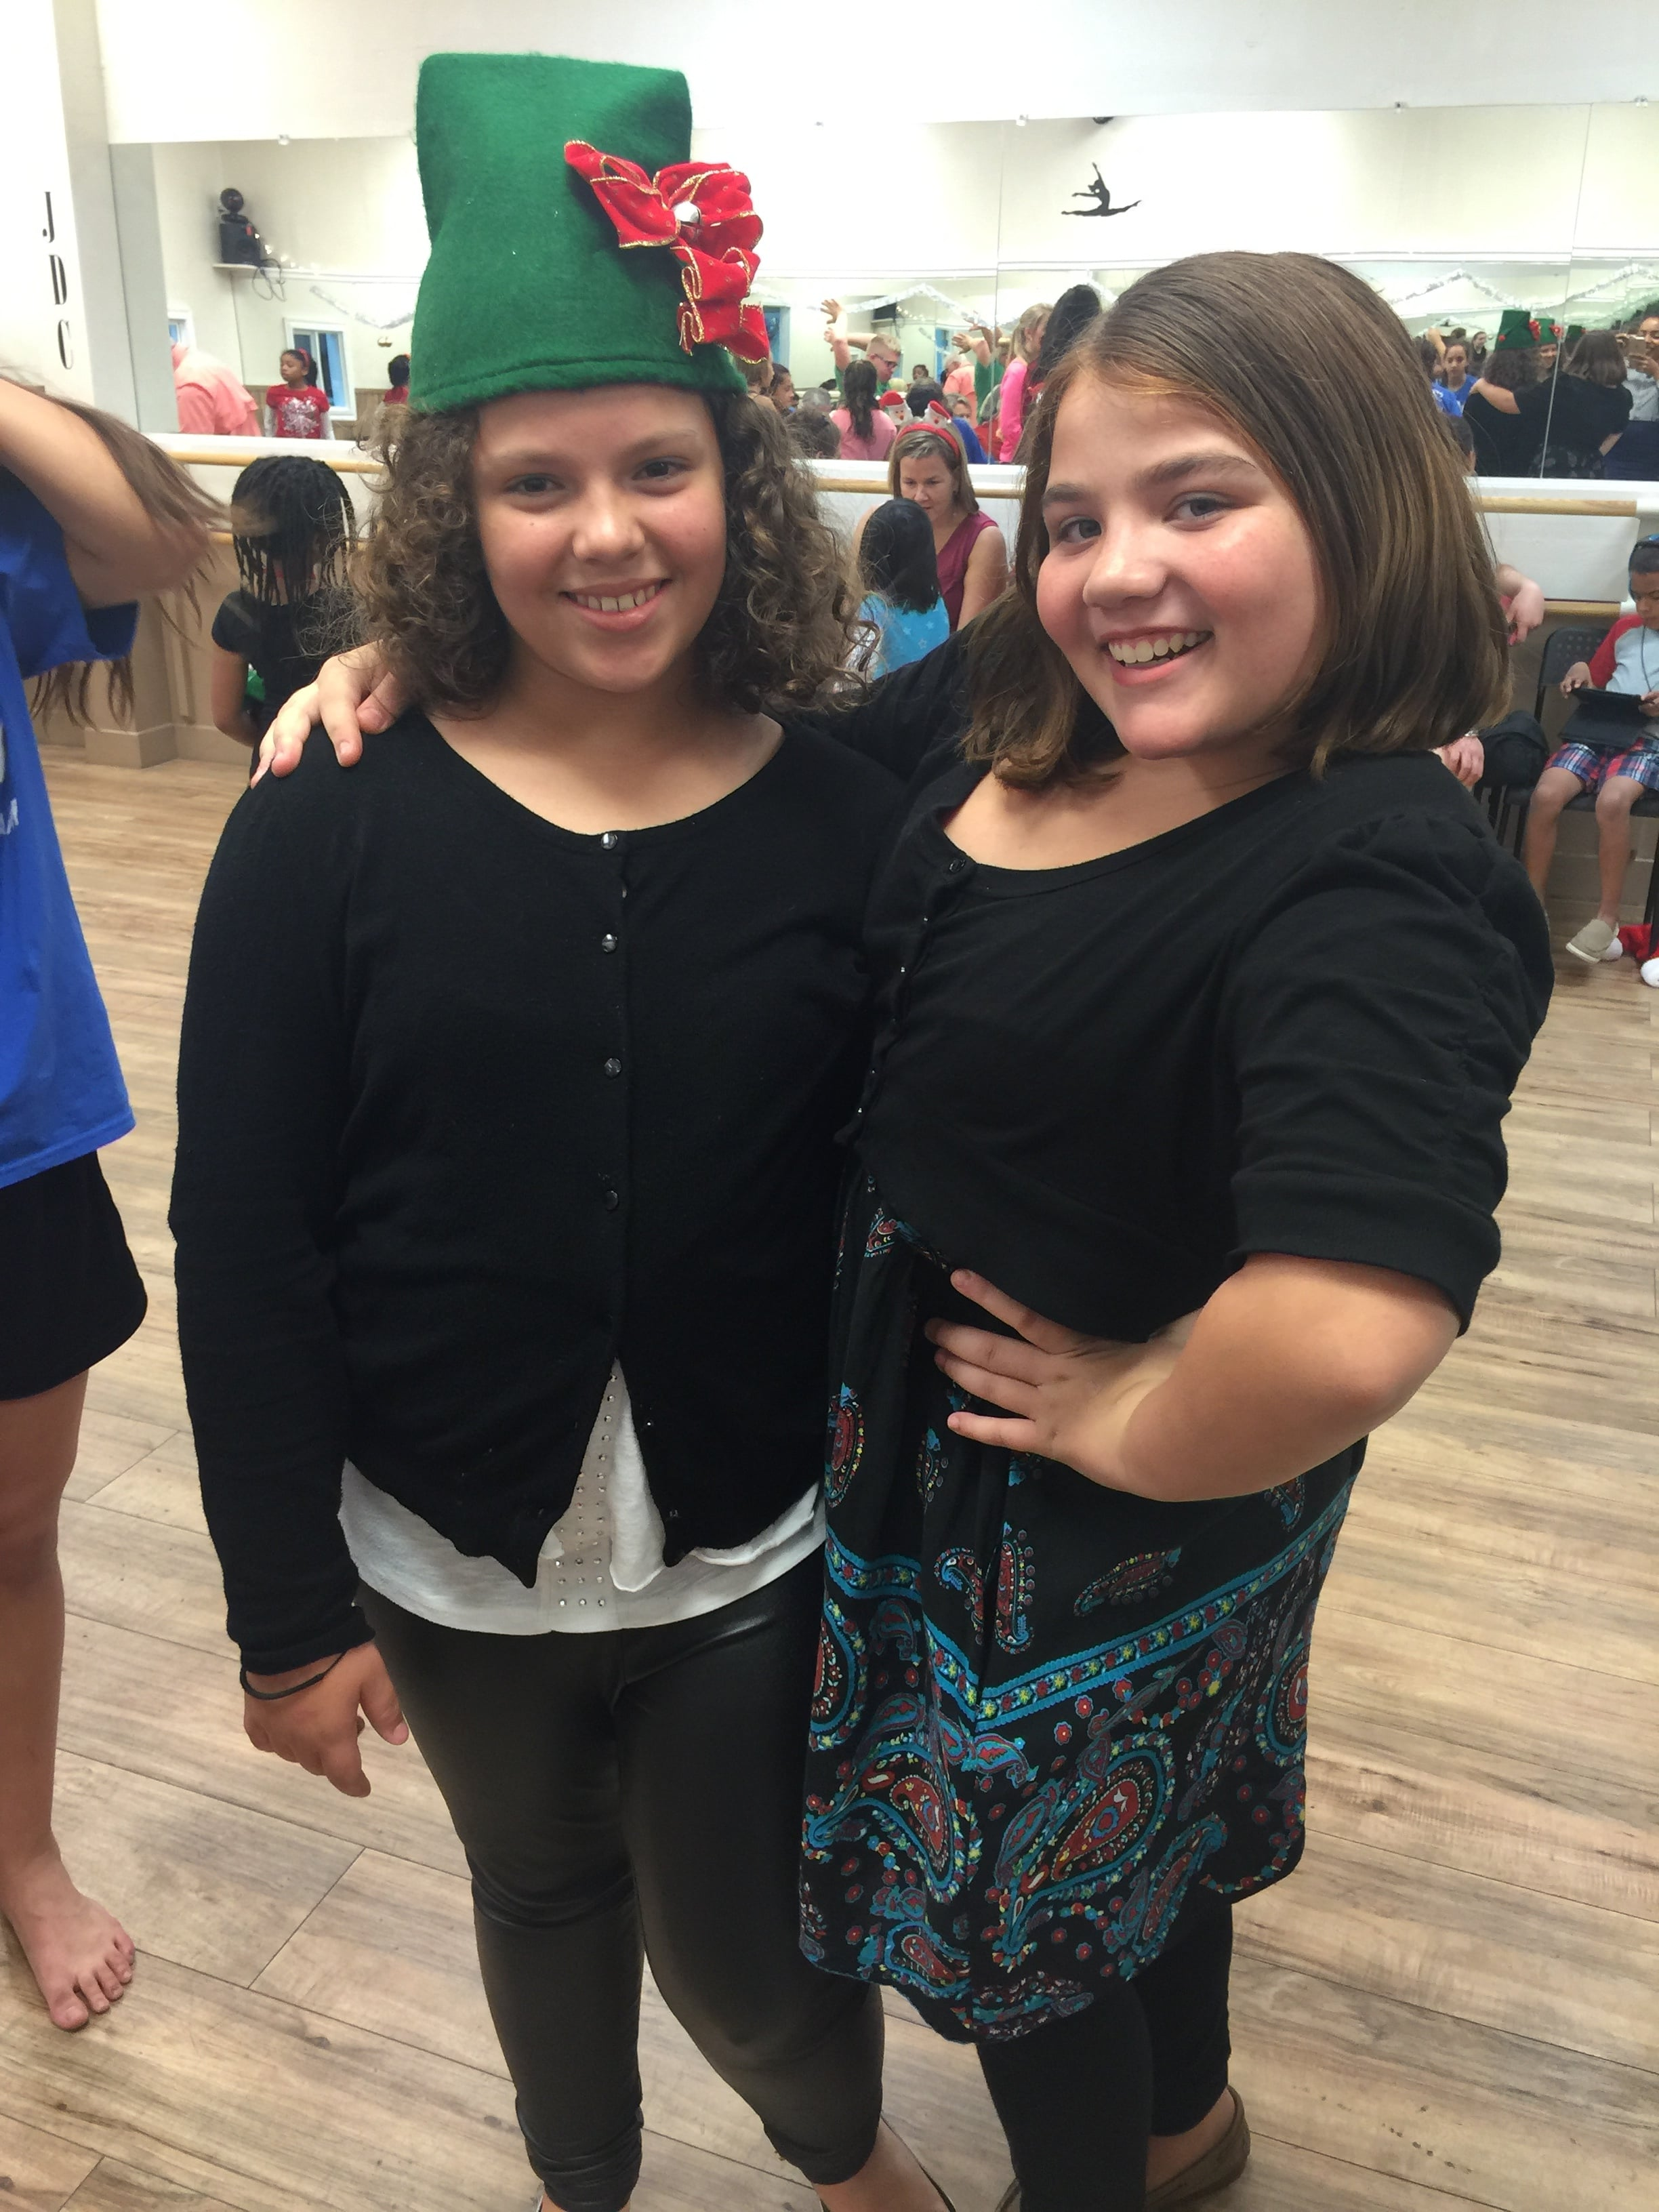 Youth Leonna and Phrankie enjoying a holiday gathering sponsored by a local dance center. Special thanks to Foundation for Foster Children.